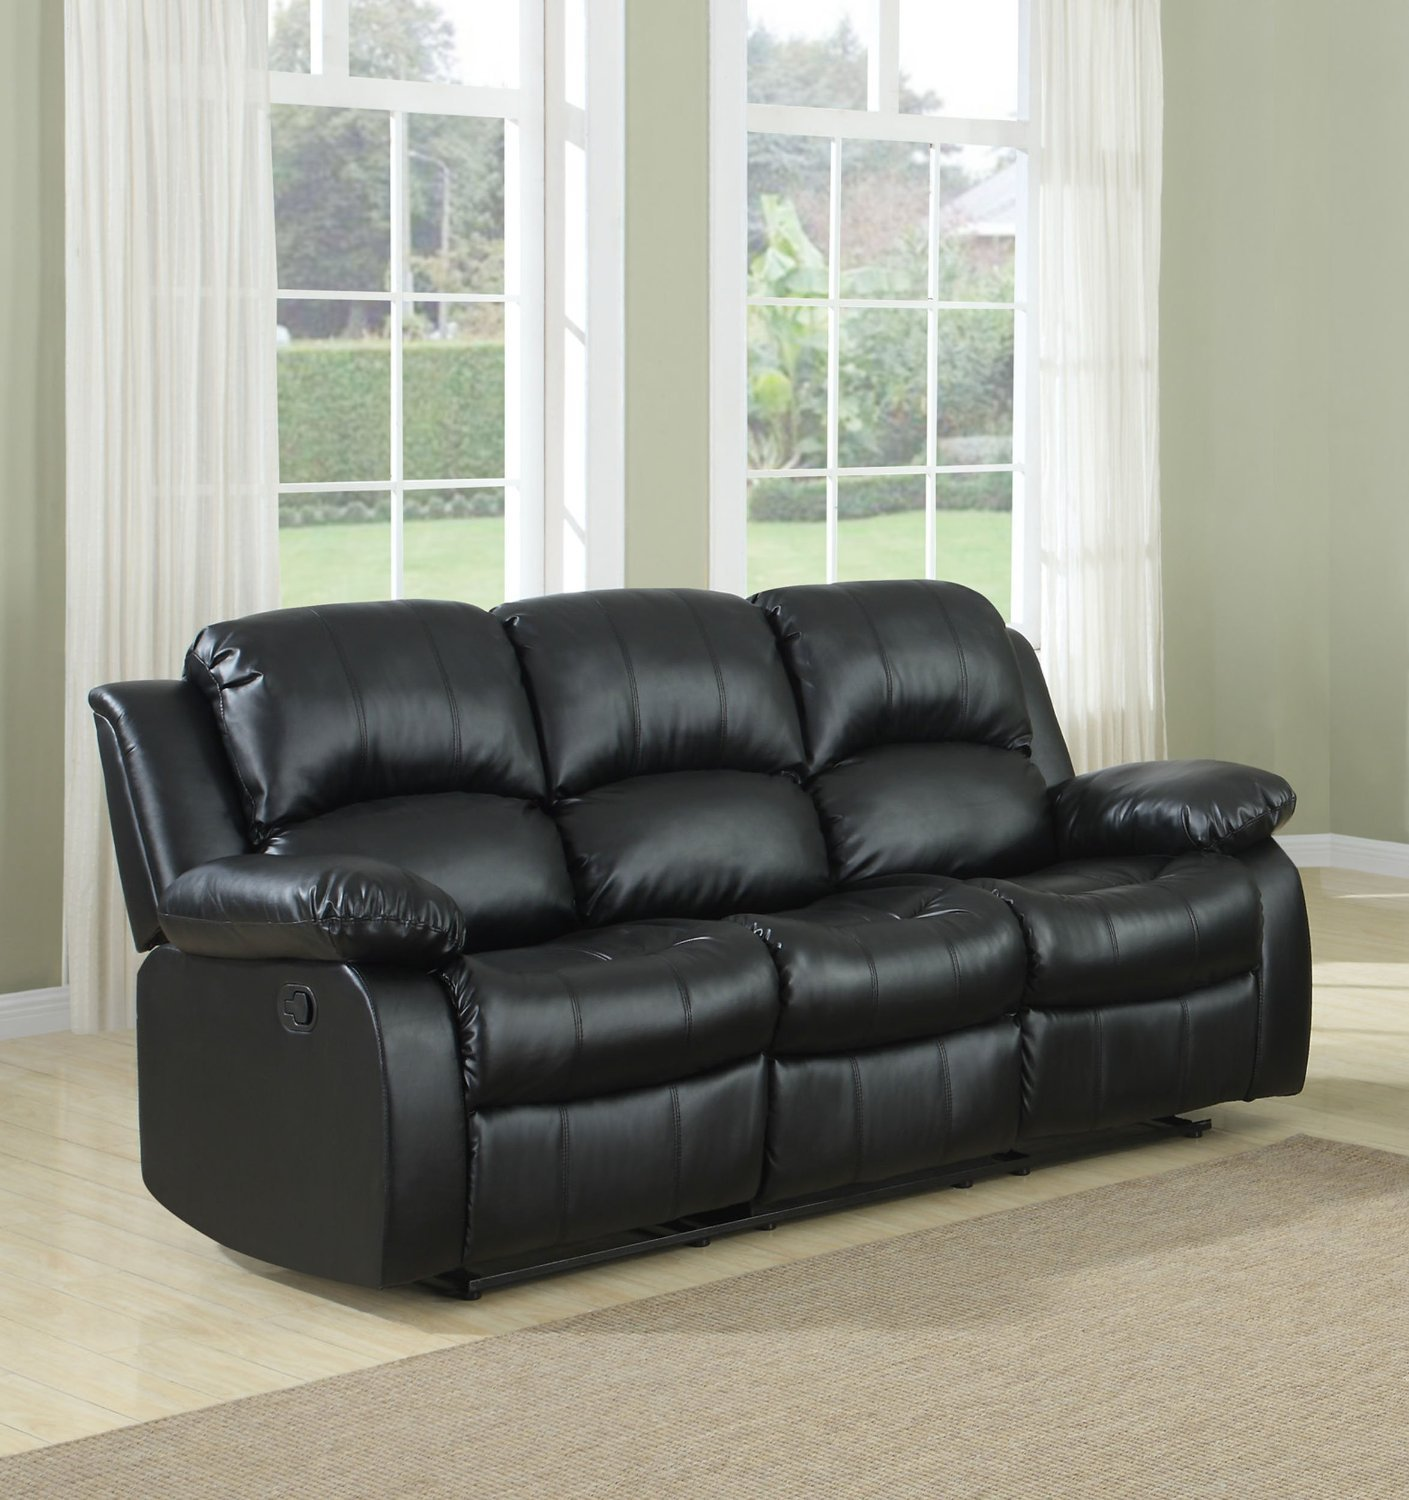 Amazon 3 seat Sofa Double Recliner Black Brown Bonded